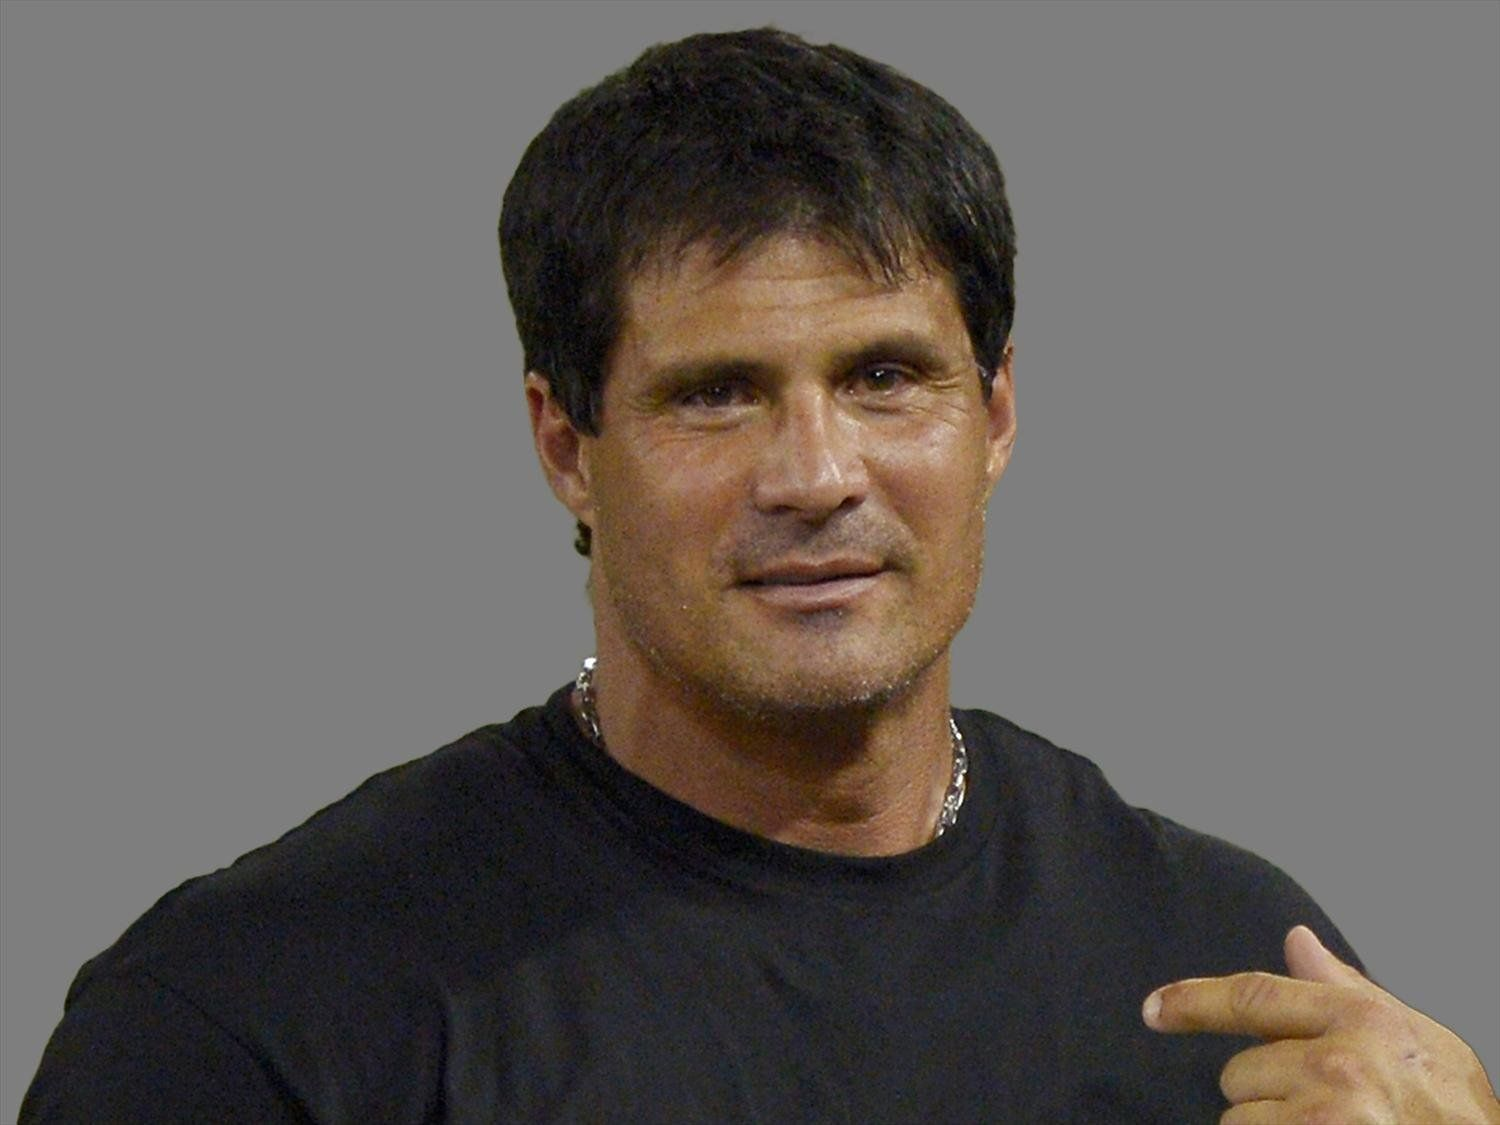 Read: For $5,000 You Can Hunt Bigfoot With Jose Canseco